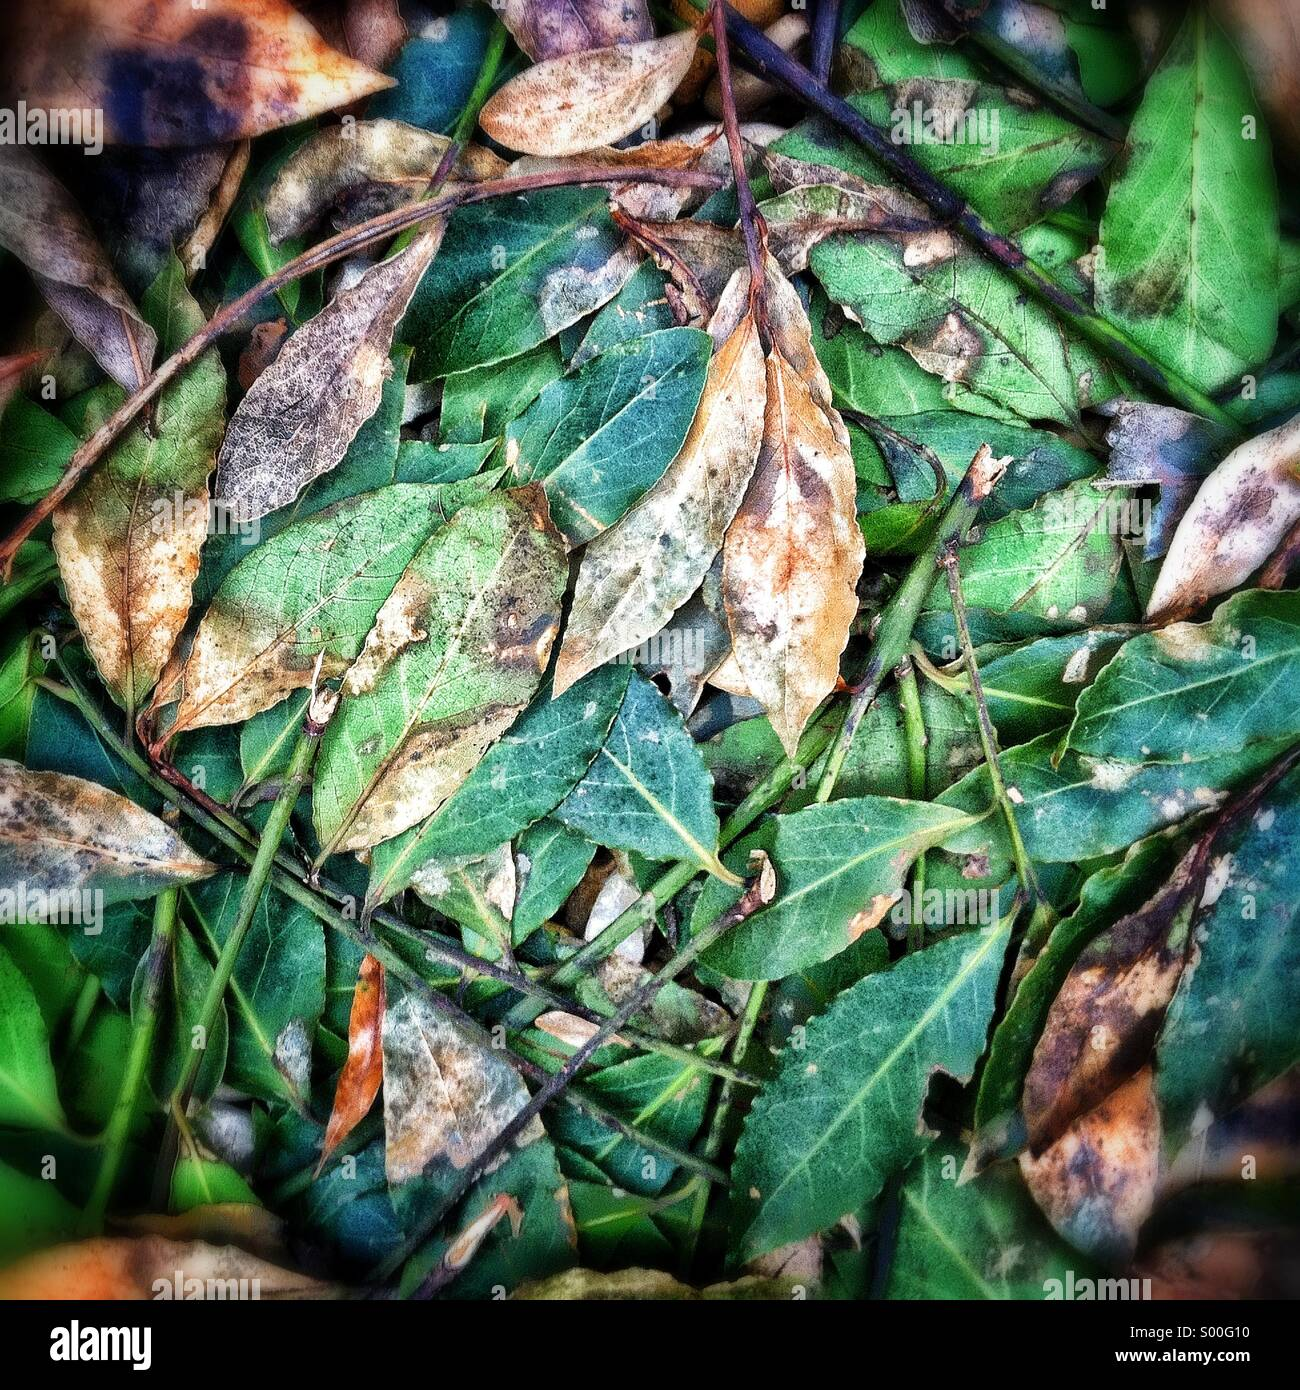 Leaves on the ground - Stock Image